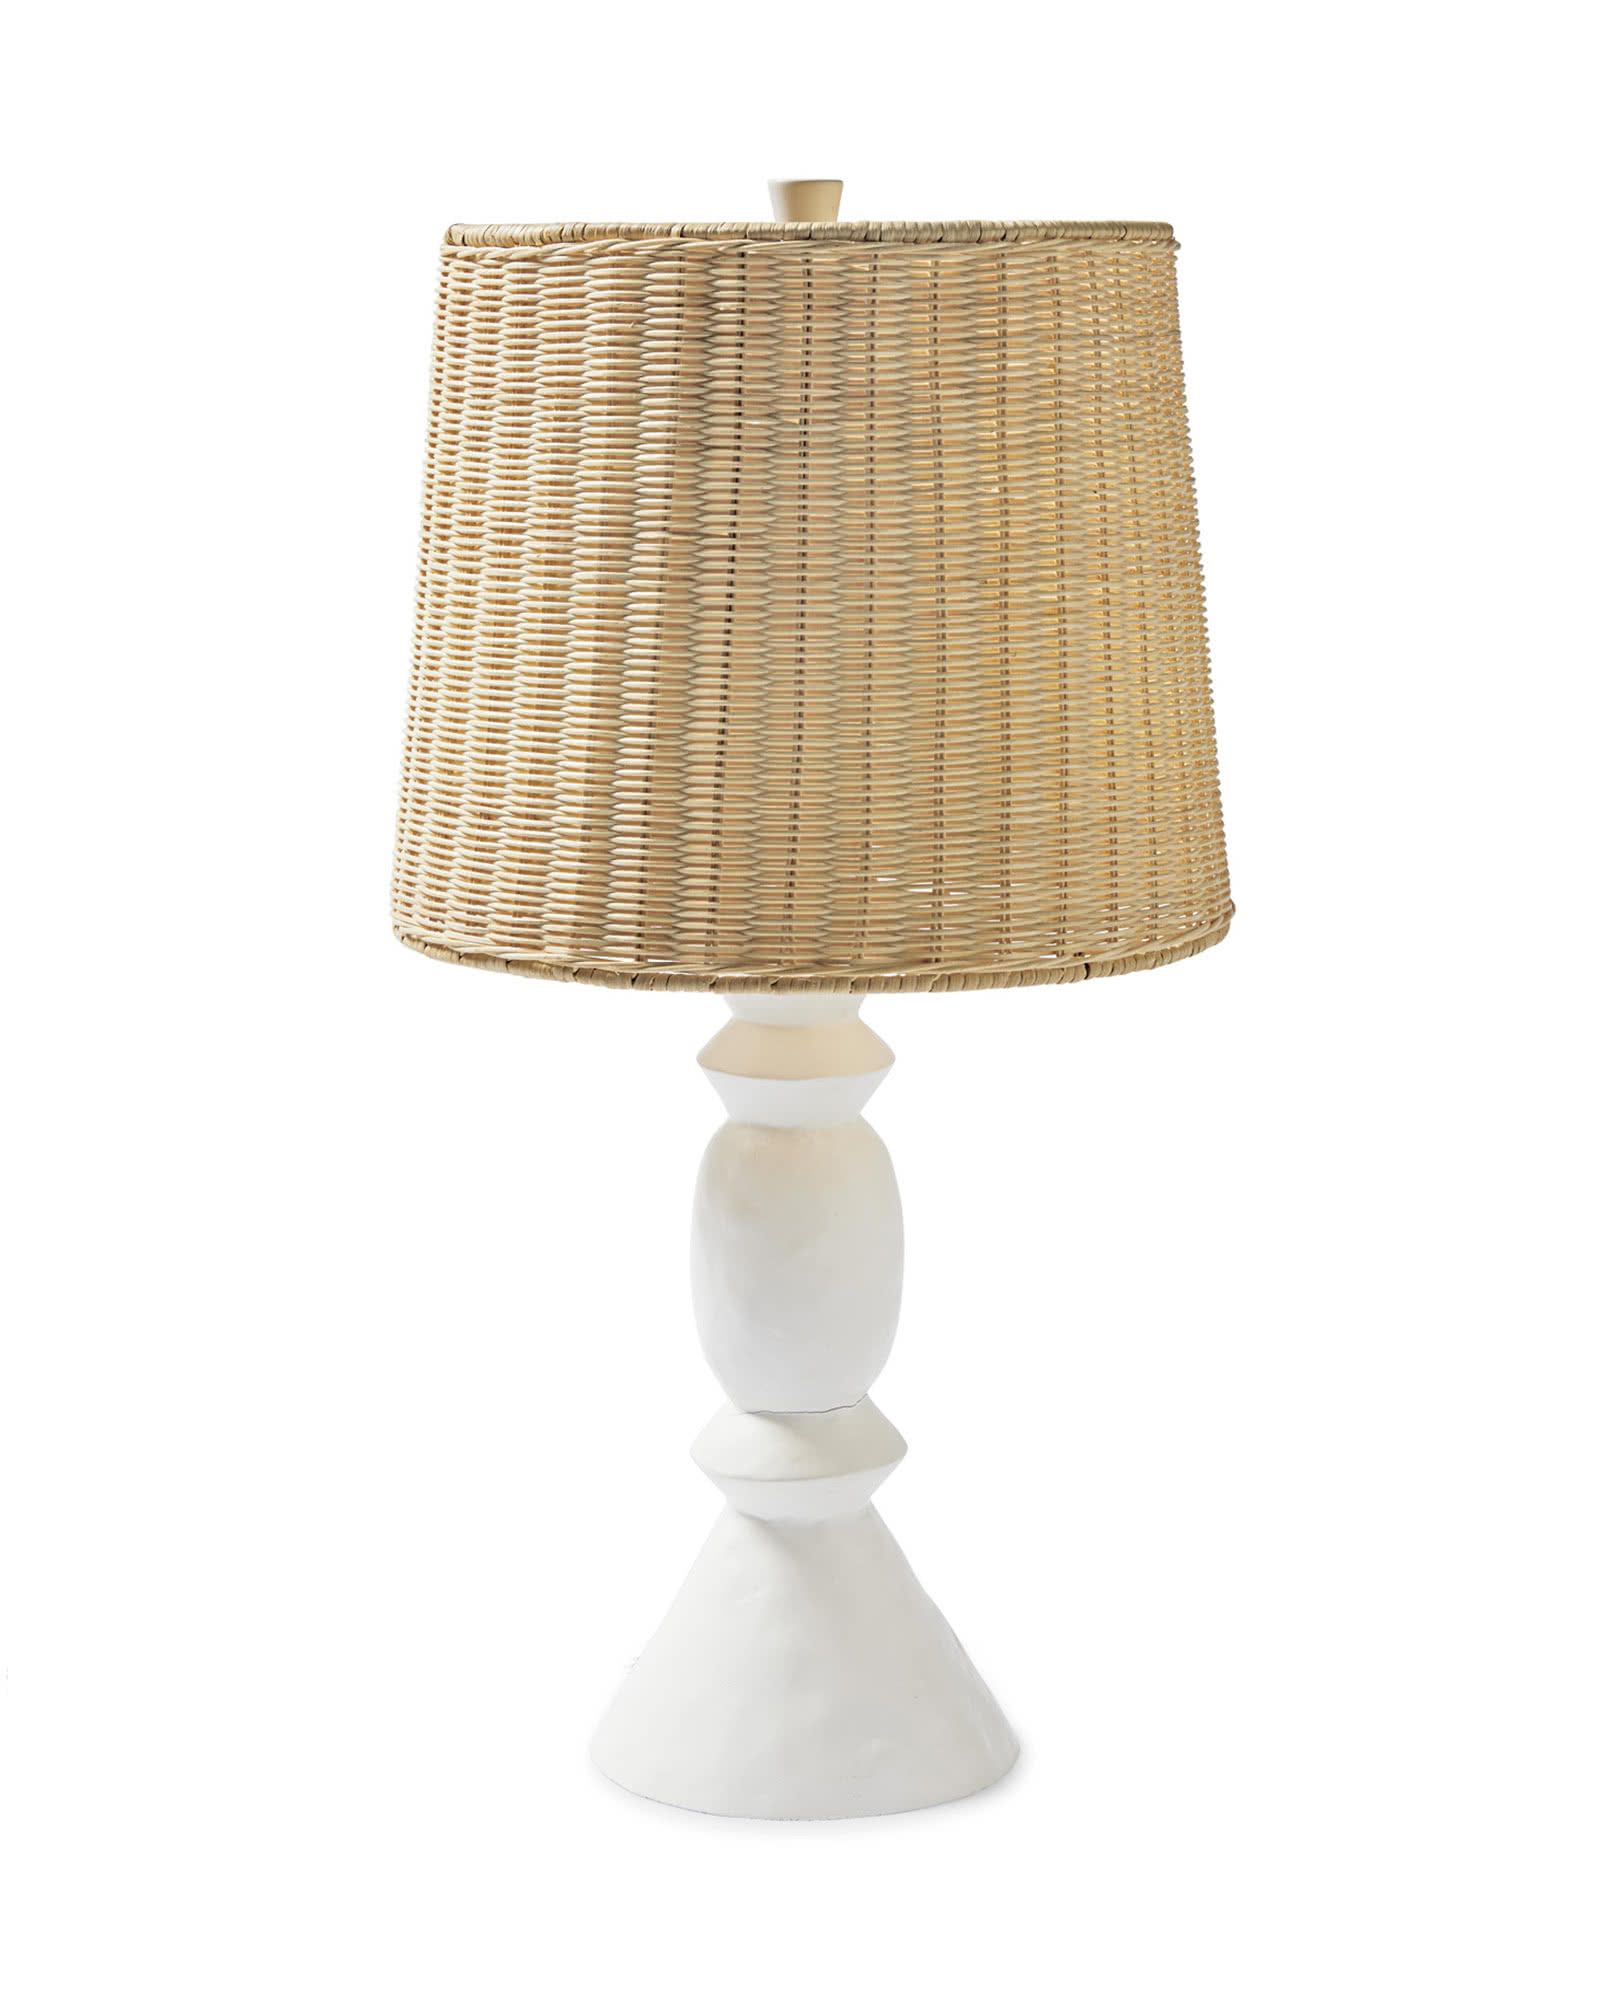 Small Brighton Table Lamp, Wicker